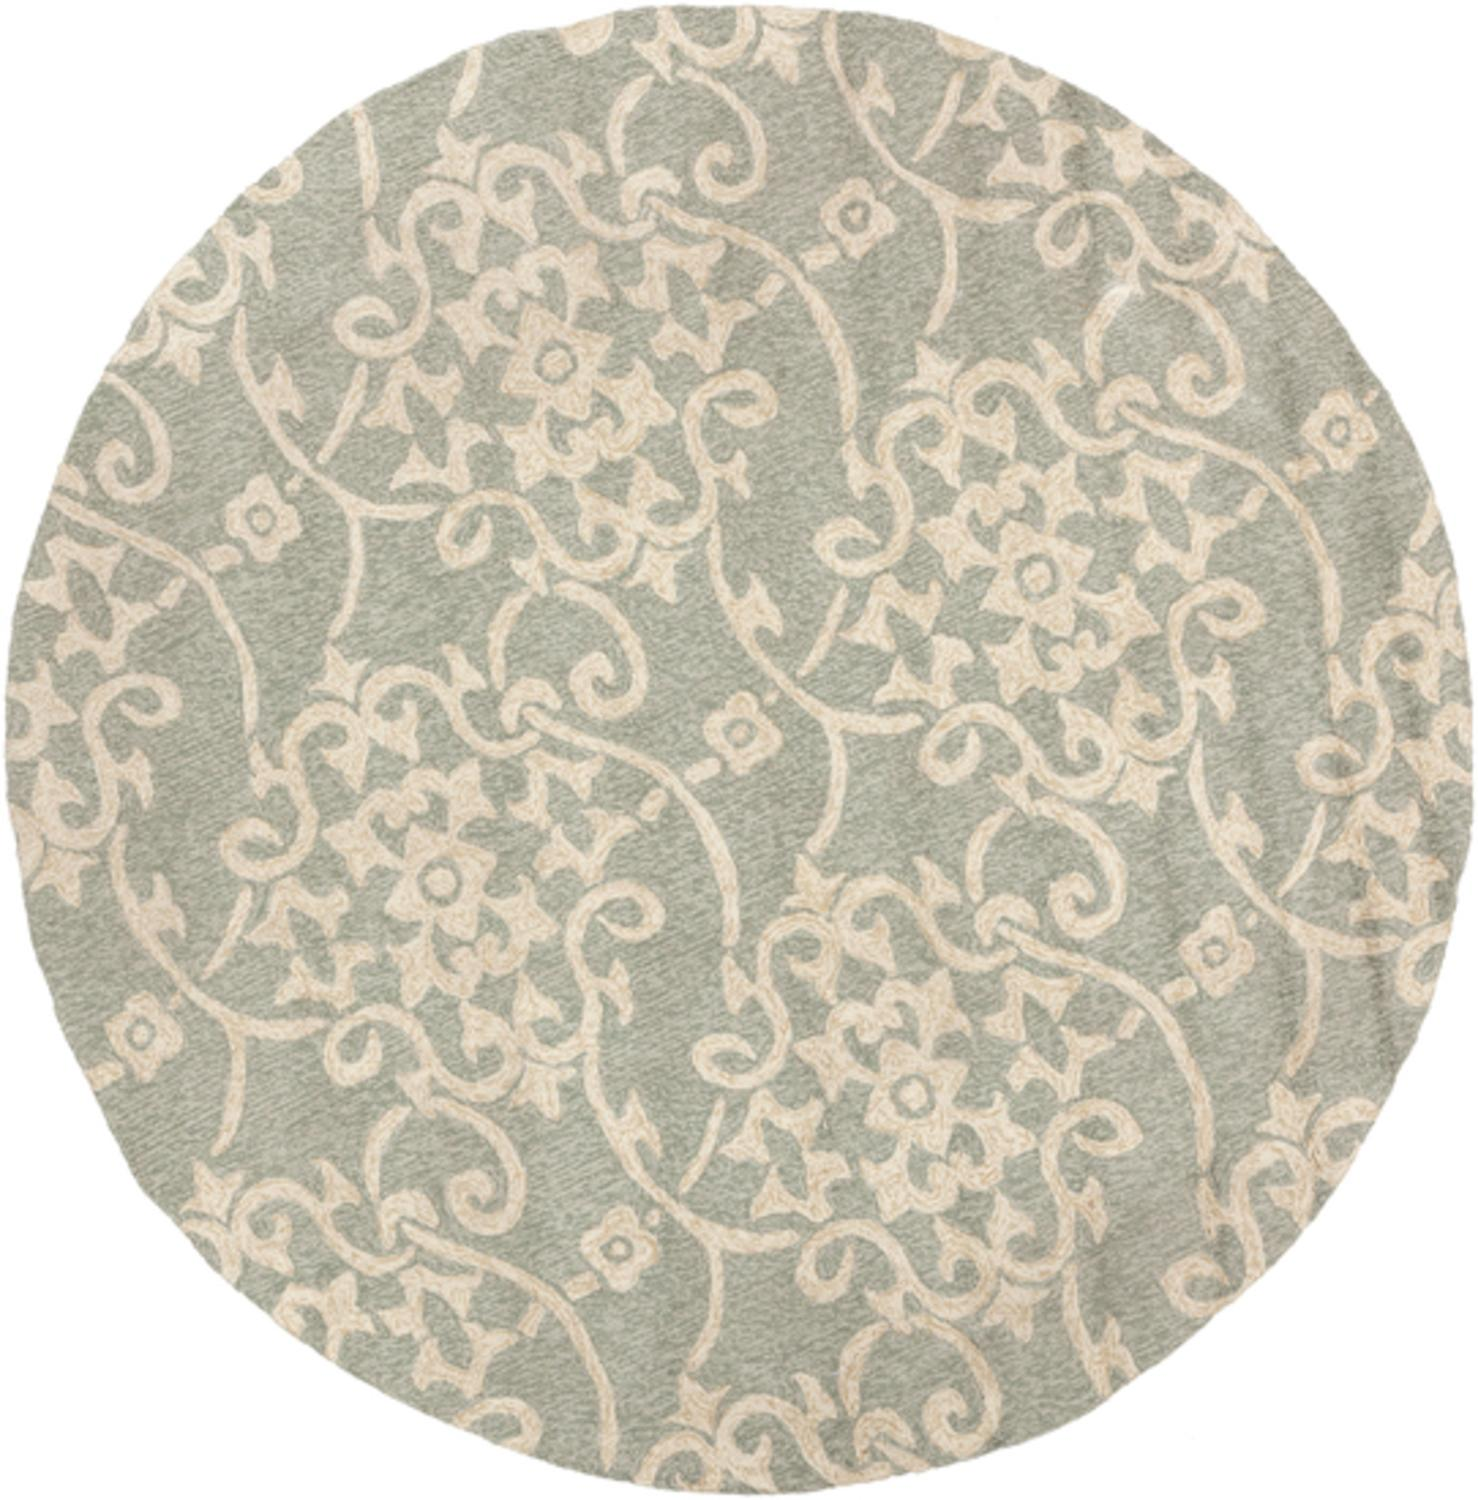 8' Starry Jasmine Sea Green and Beige Hand Hooked Outdoor Round Area